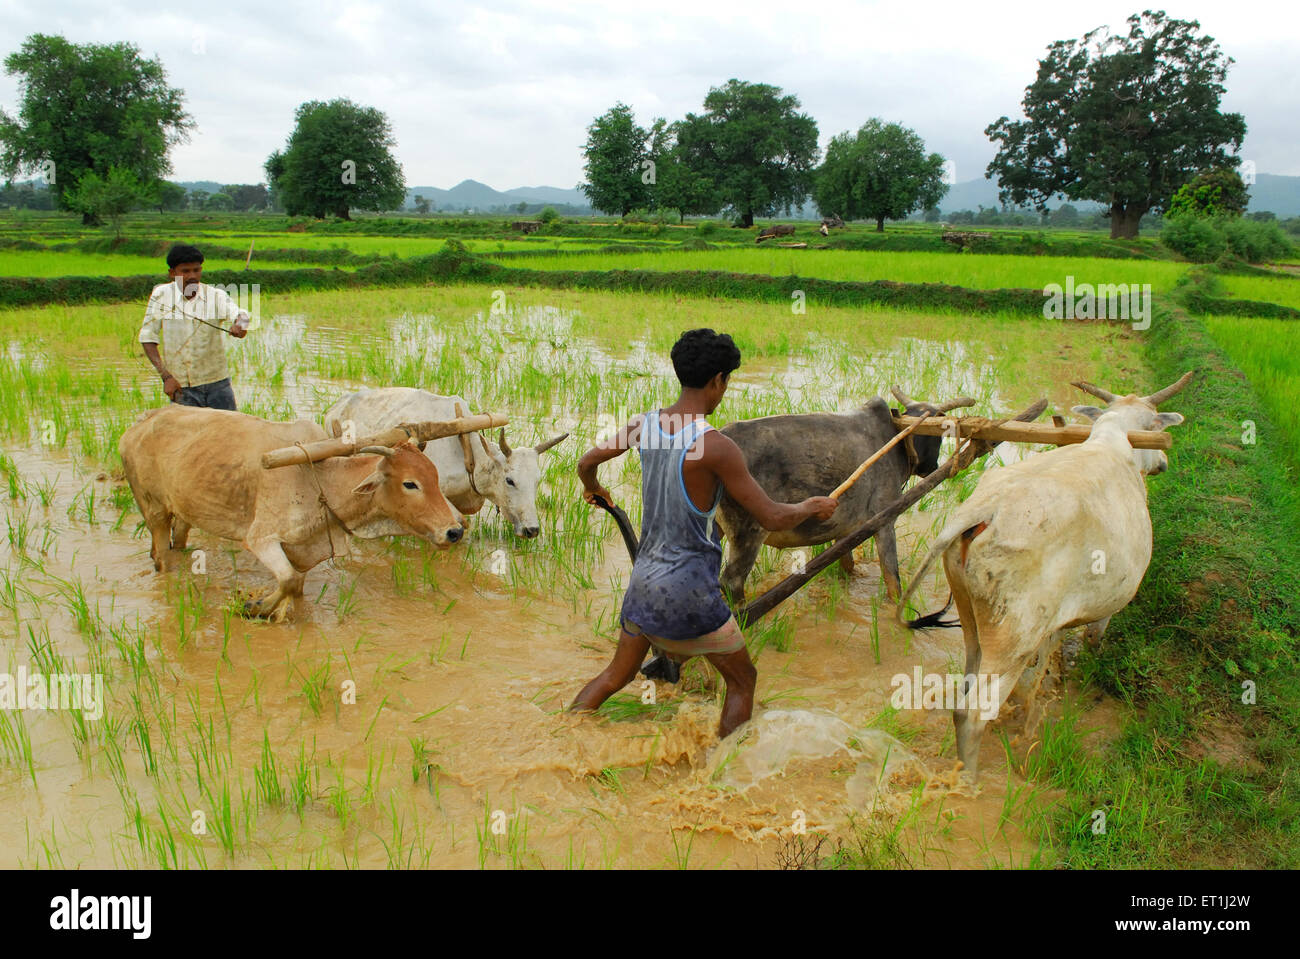 Ho tribes men with bullocks in paddy field ; Chakradharpur ; Jharkhand ; India NO MR - Stock Image